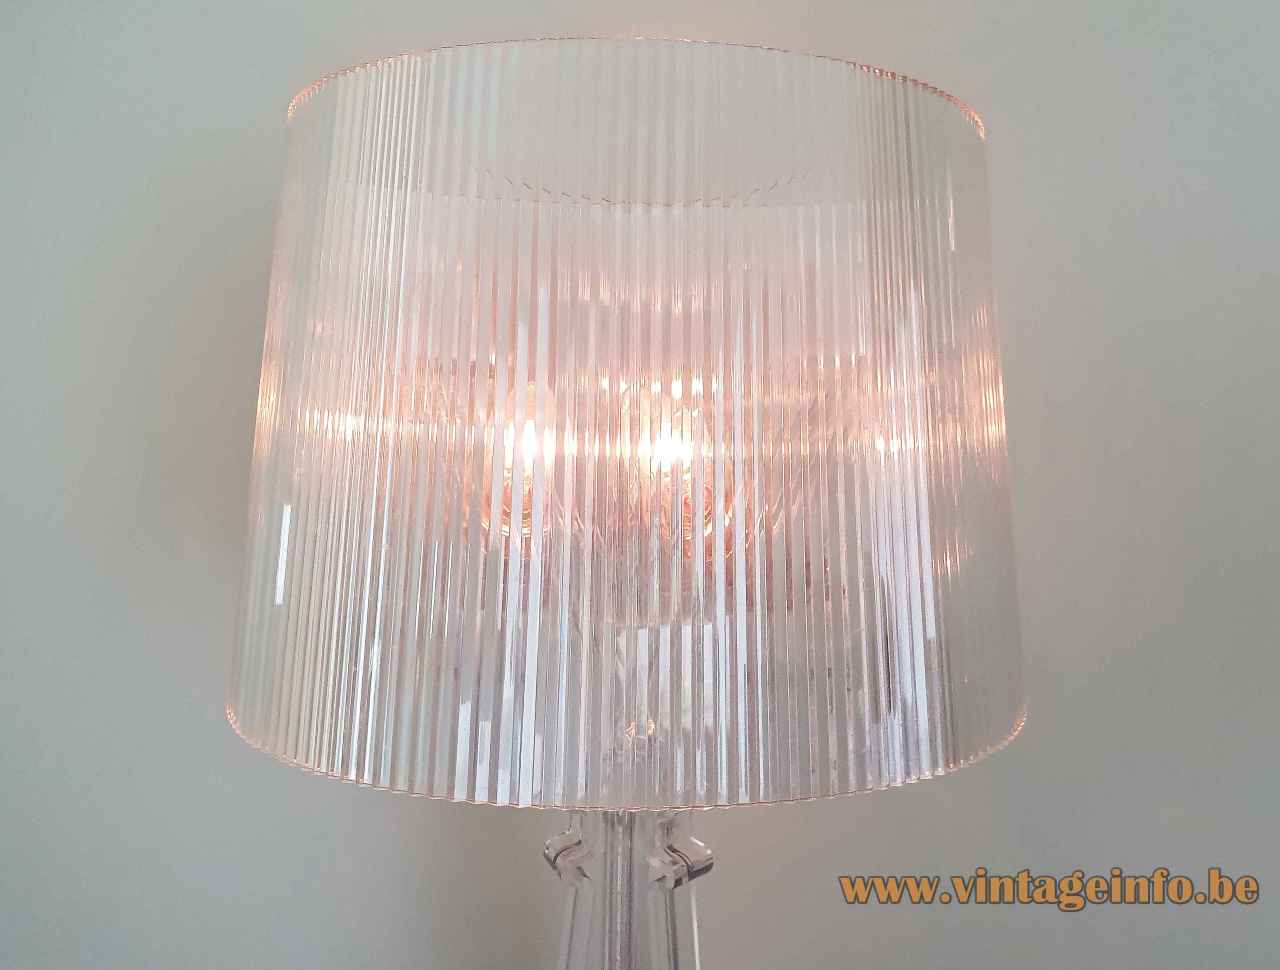 Kartell Bourgie table lamp clear plastic ribbed conical lampshade 2004 design: Ferruccio Laviani Italy E14 sockets